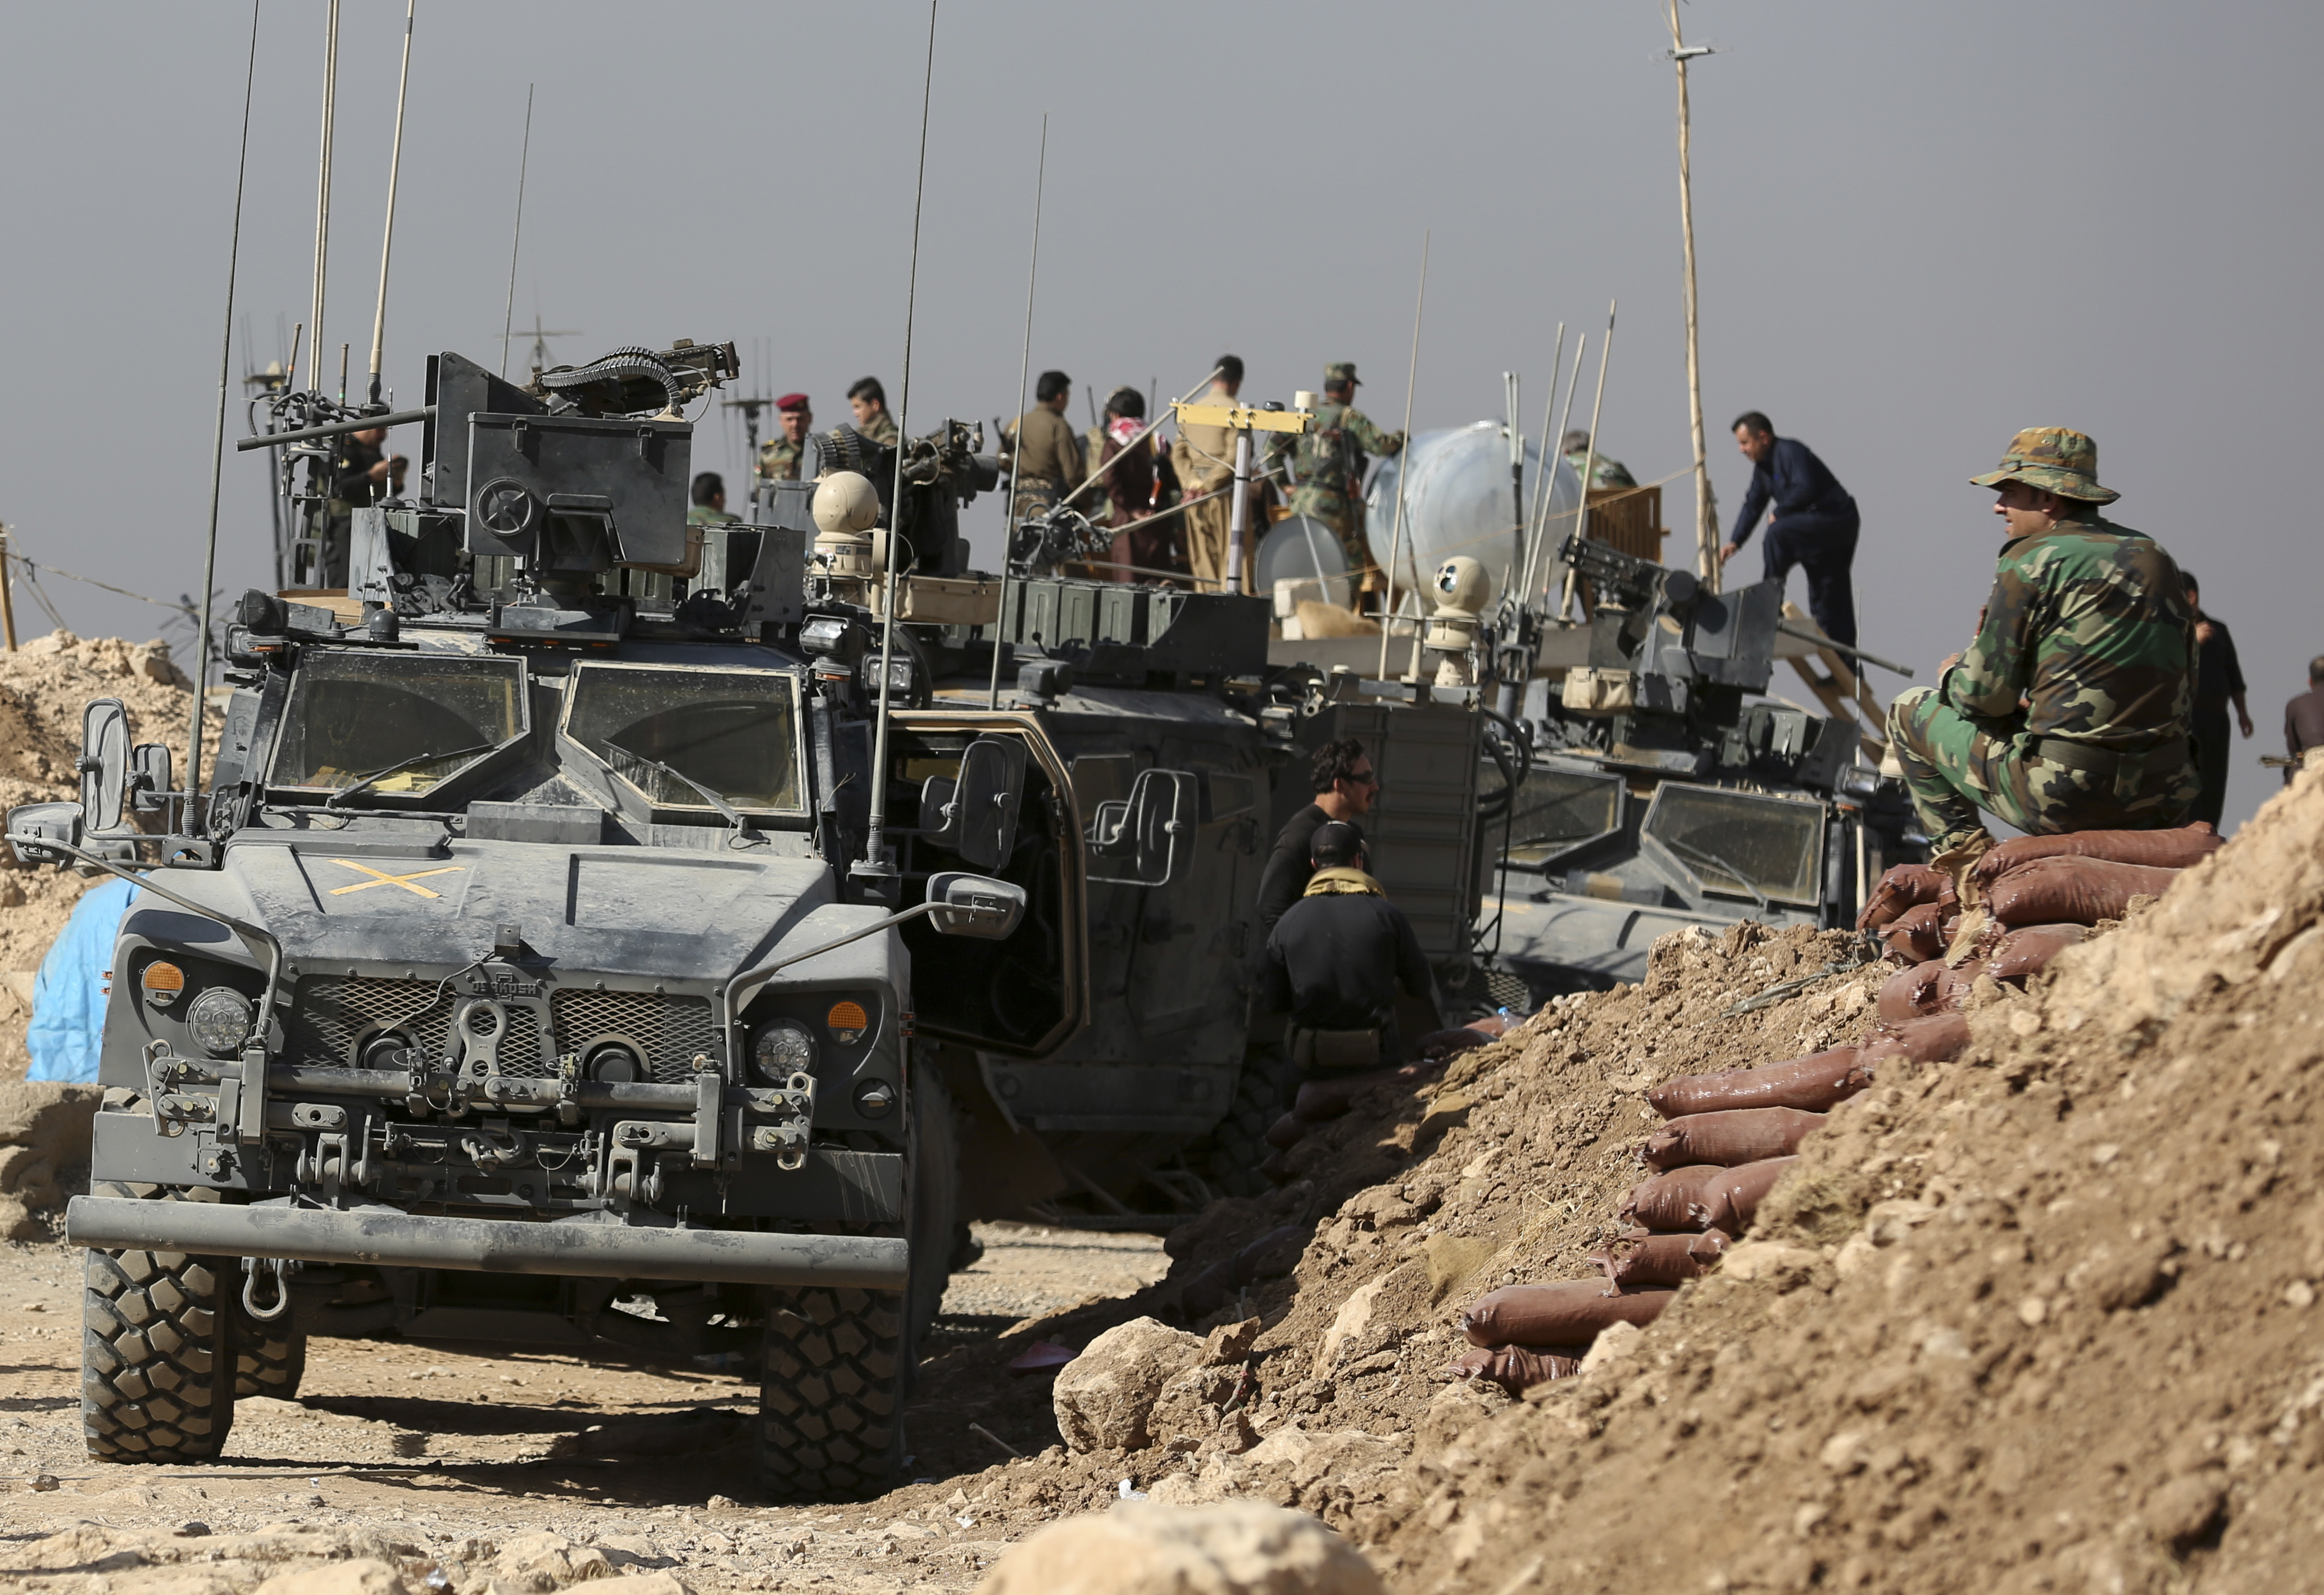 Iraq US-5 In this Friday, Oct. 21, 2016 photo, U.S. and Iraqi forces work together at a joint base, on the outskirts of Mosul, Iraq. Reverberations from President Donald Trump's travel ban and other stances are threatening to undermine future U.S.-Iraqi security cooperation, rattling a key alliance that over the past two years has slowly beaten back the Islamic State group. Iraq's prime minister, Haider al-Abadi, has sought to contain public anger sparked by the ban and by Trump's repeated statements that the Americans should have taken Iraq's oil, as well as his hard line against Iran, a close ally of Baghdad. (AP Photo/Khalid Mohammed)